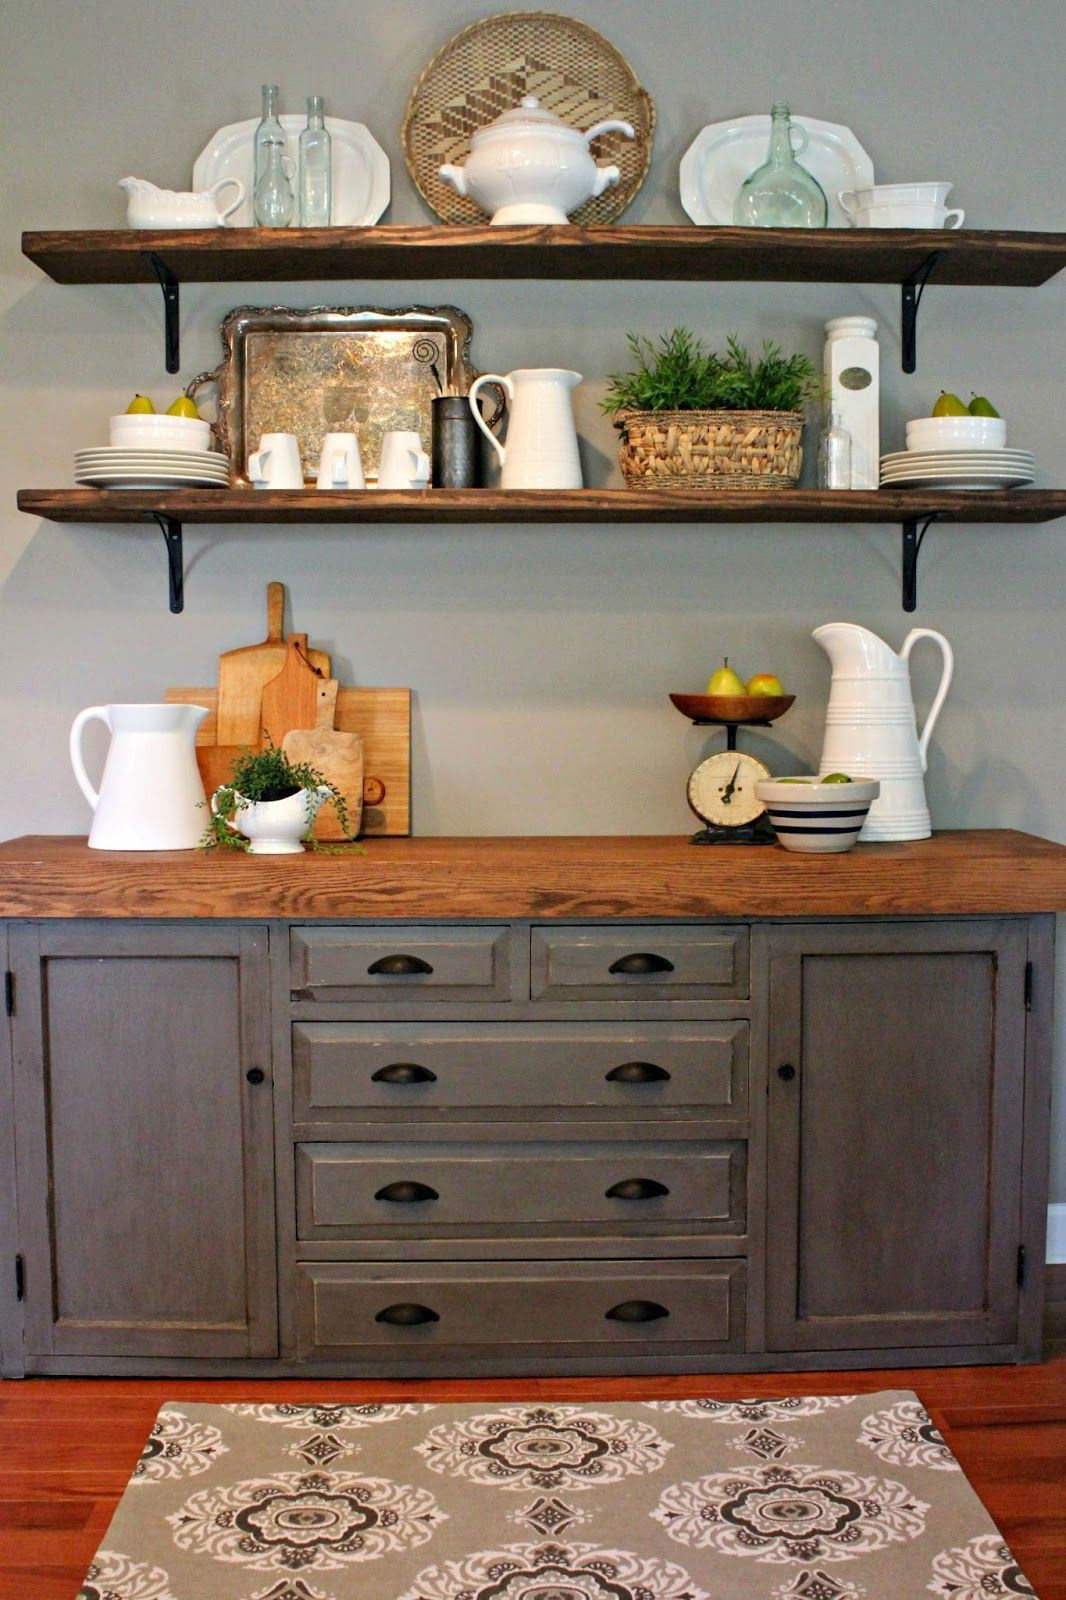 Dining Room Shelving Idea with Antique Buffet | Dining Rooms ...